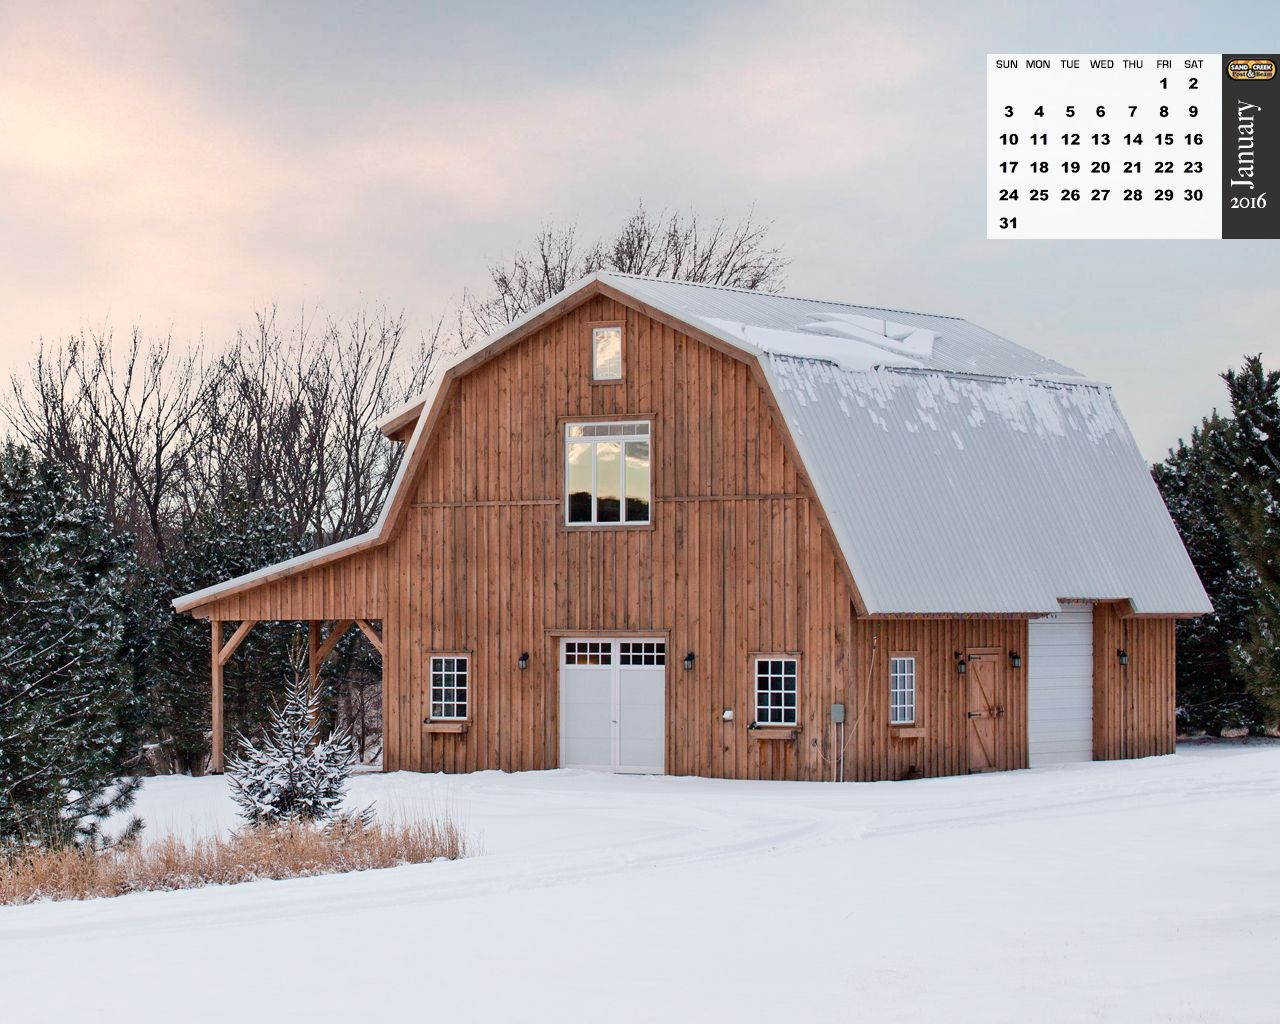 Traditional wood barn projects photo galleries for Gambrel roof barn kits